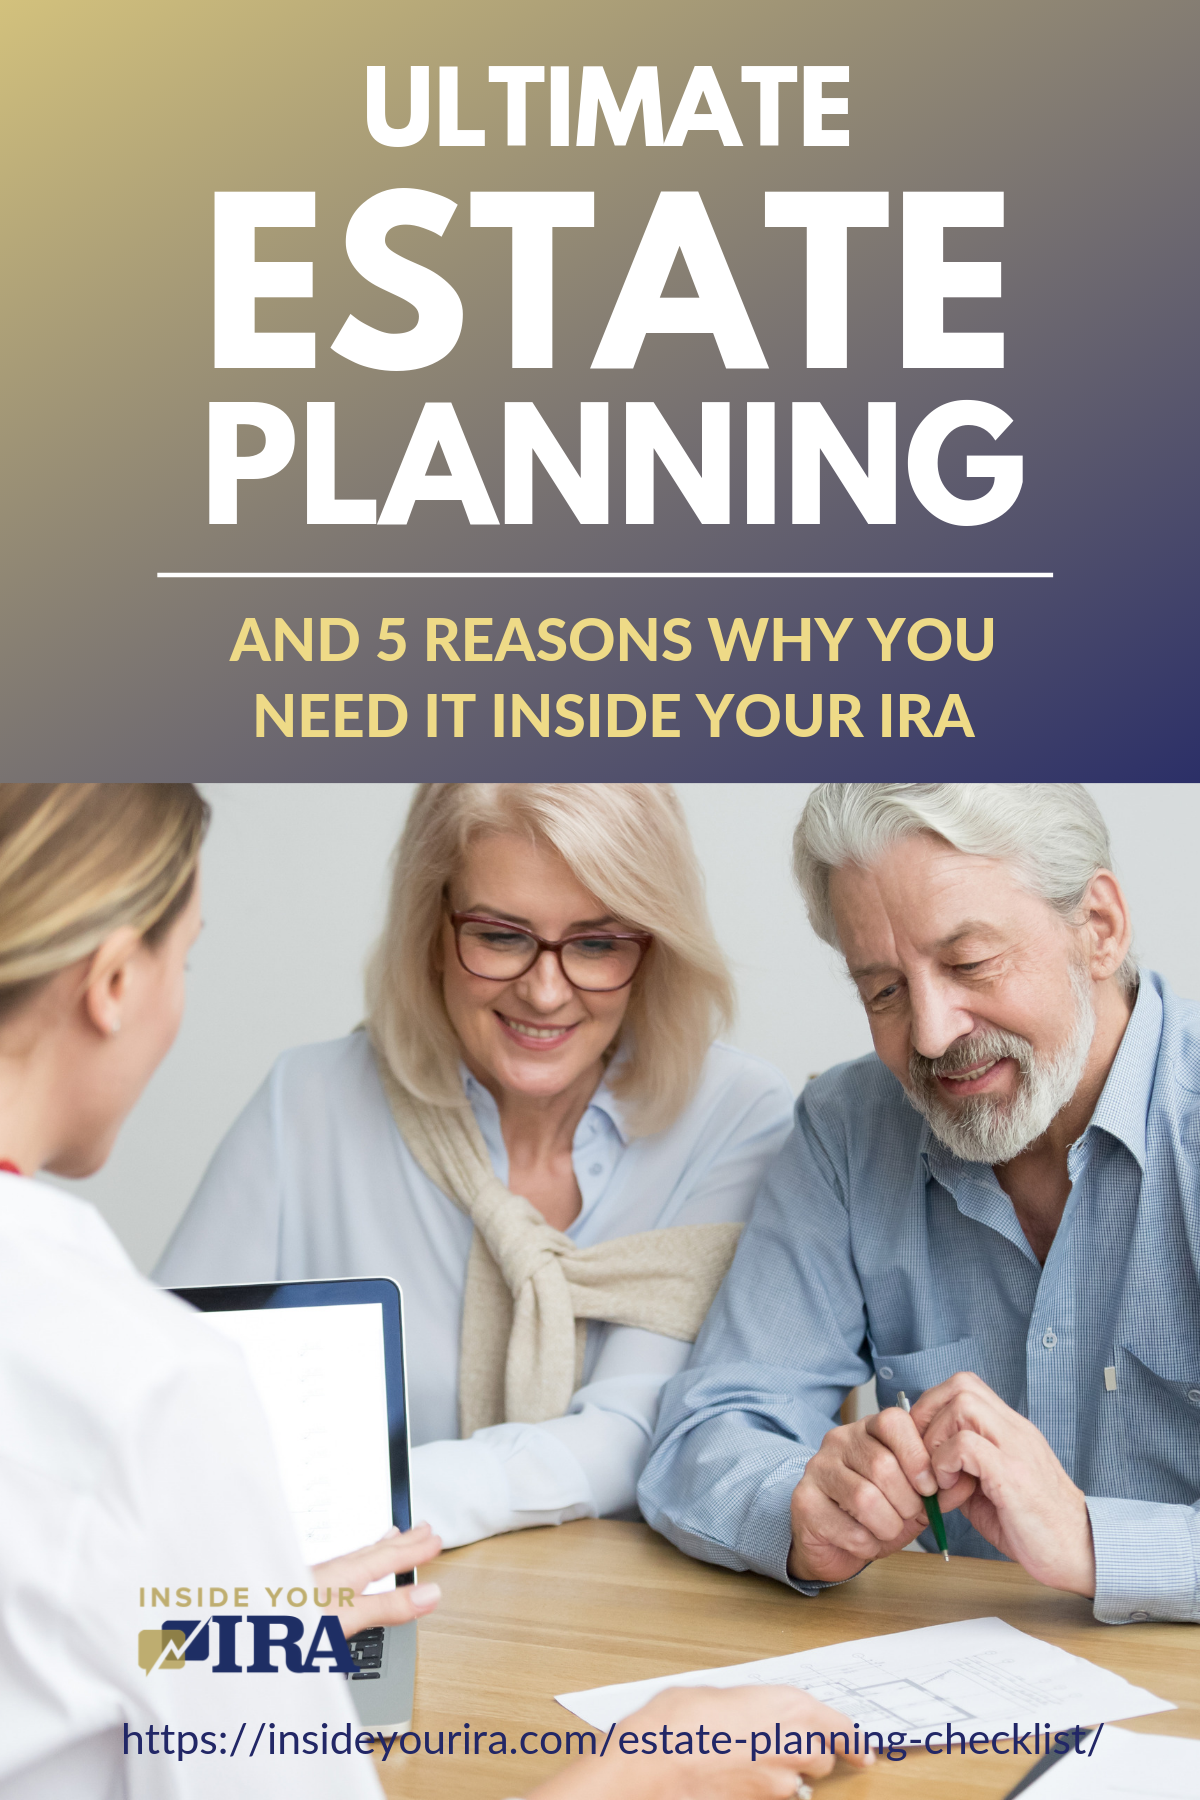 Ultimate Estate Planning Checklist and 5 Reasons Why You Need It Inside Your IRA https://insideyourira.com/estate-planning-checklist/